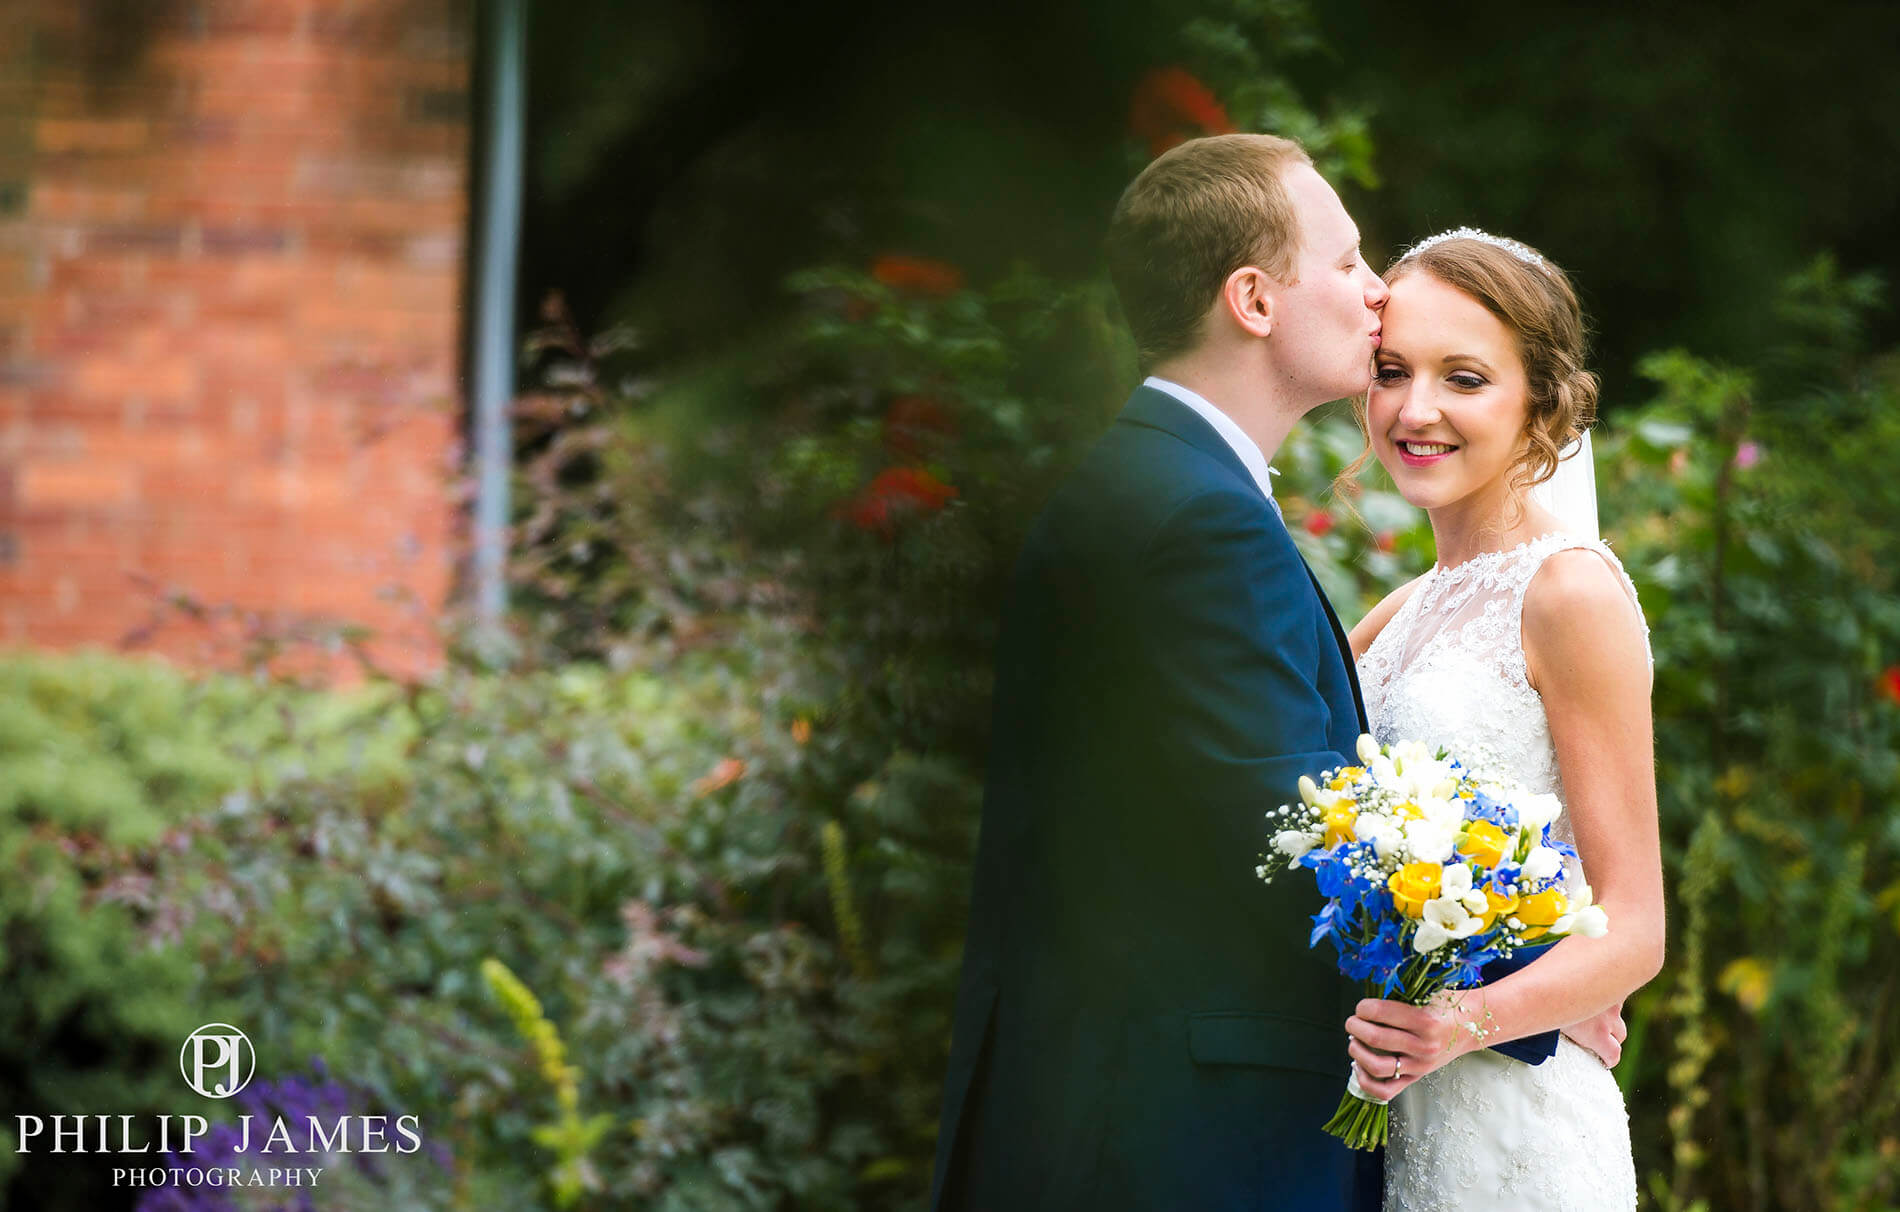 Birmingham Wedding Photographer - Philip James Photography based in Solihull (43 of 68)